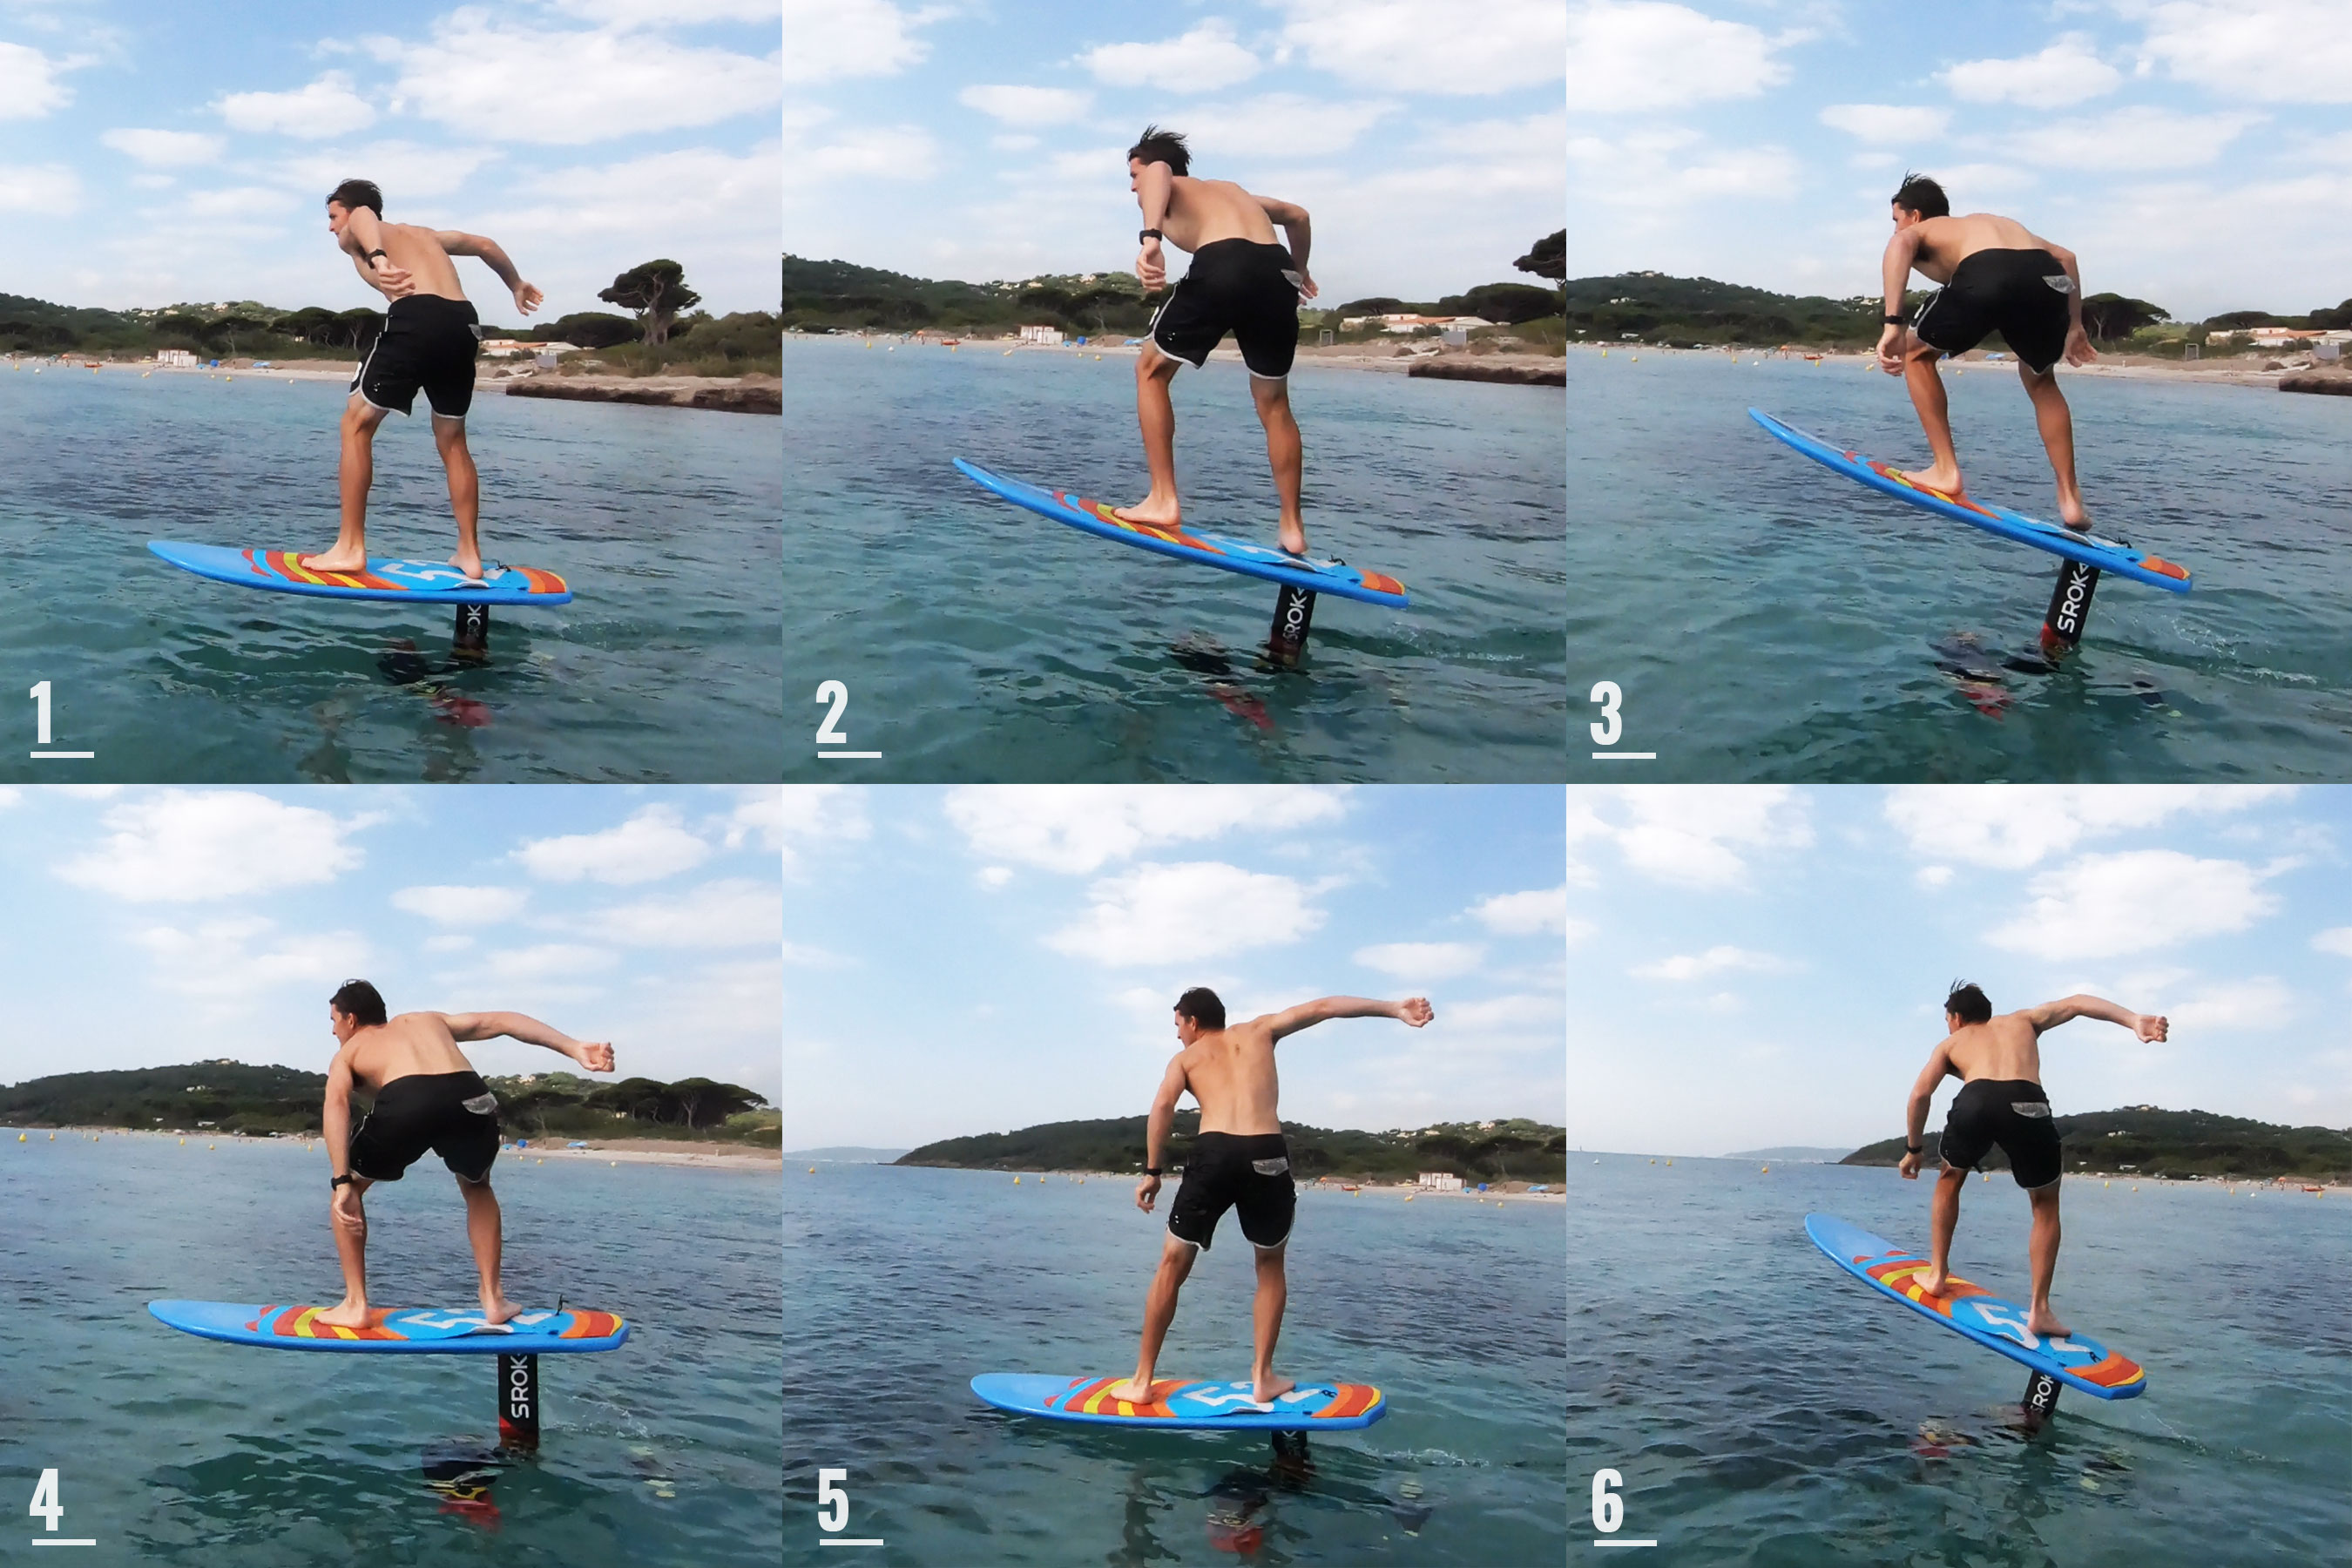 Surf foil pumping explained step by steps.